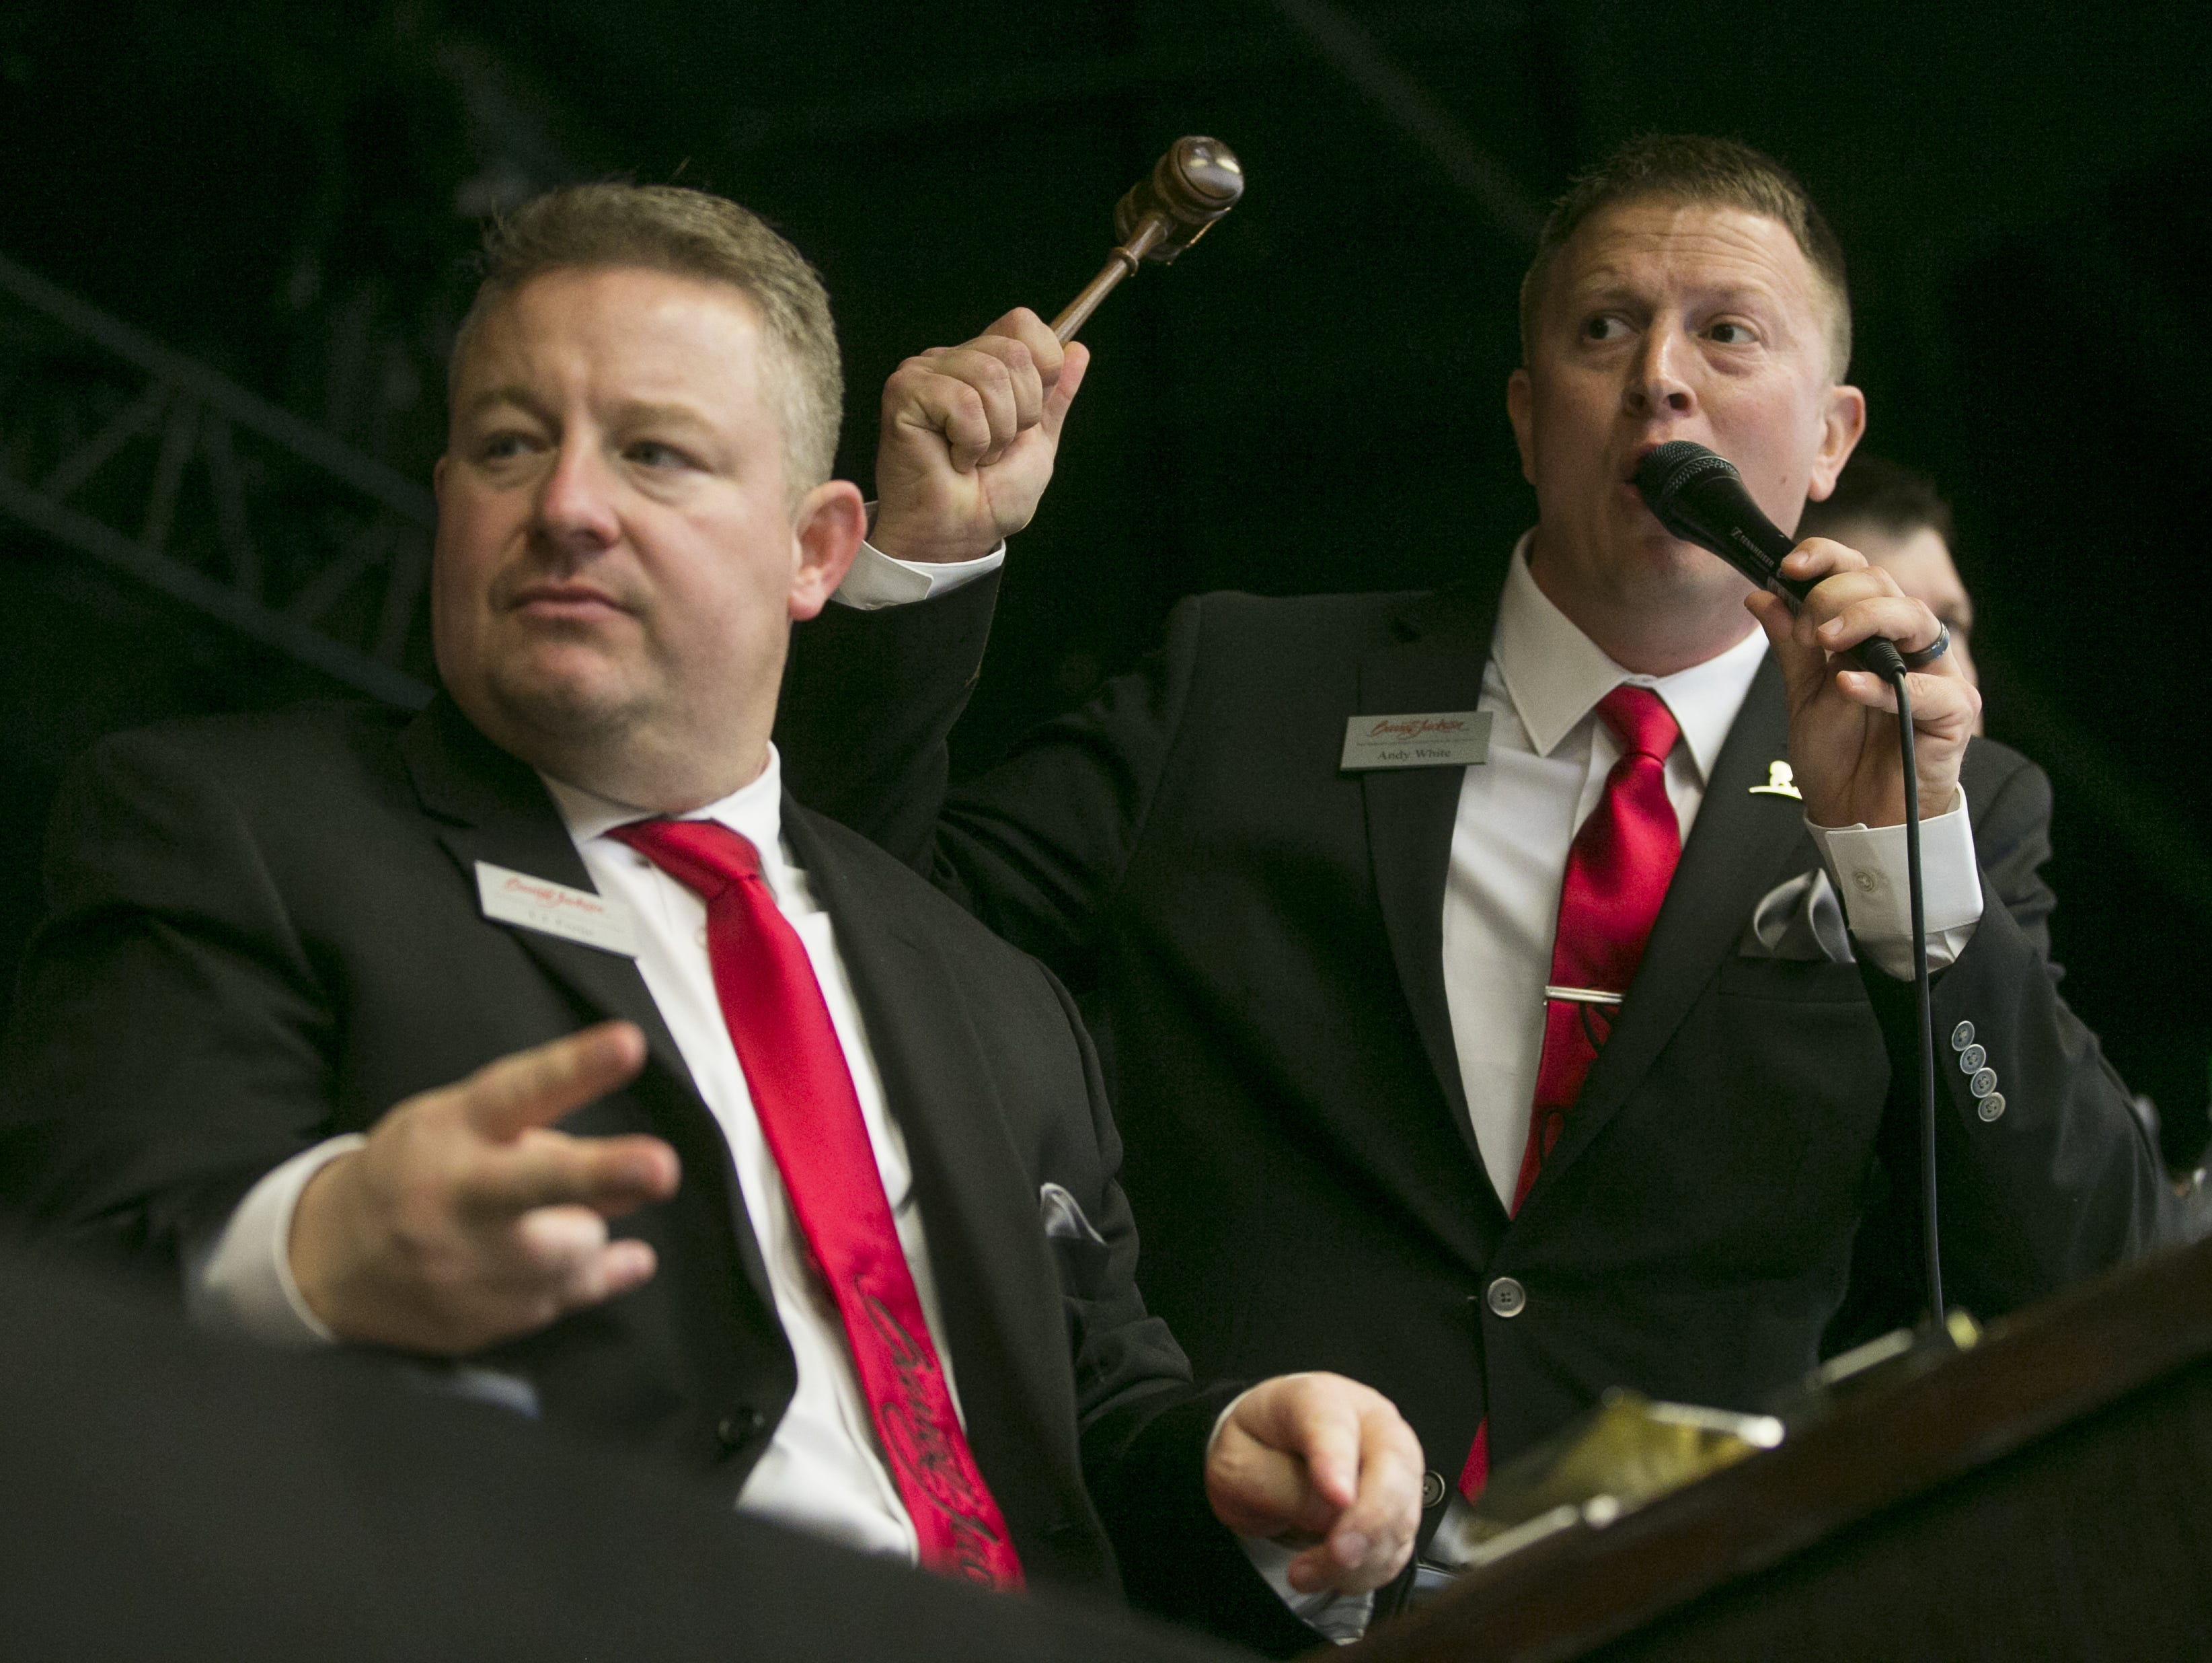 Andy White (right) auctions off cars at the Barrett-Jackson Car Auction at WestWorld in Scottsdale, Arizona, on Jan. 16, 2019.